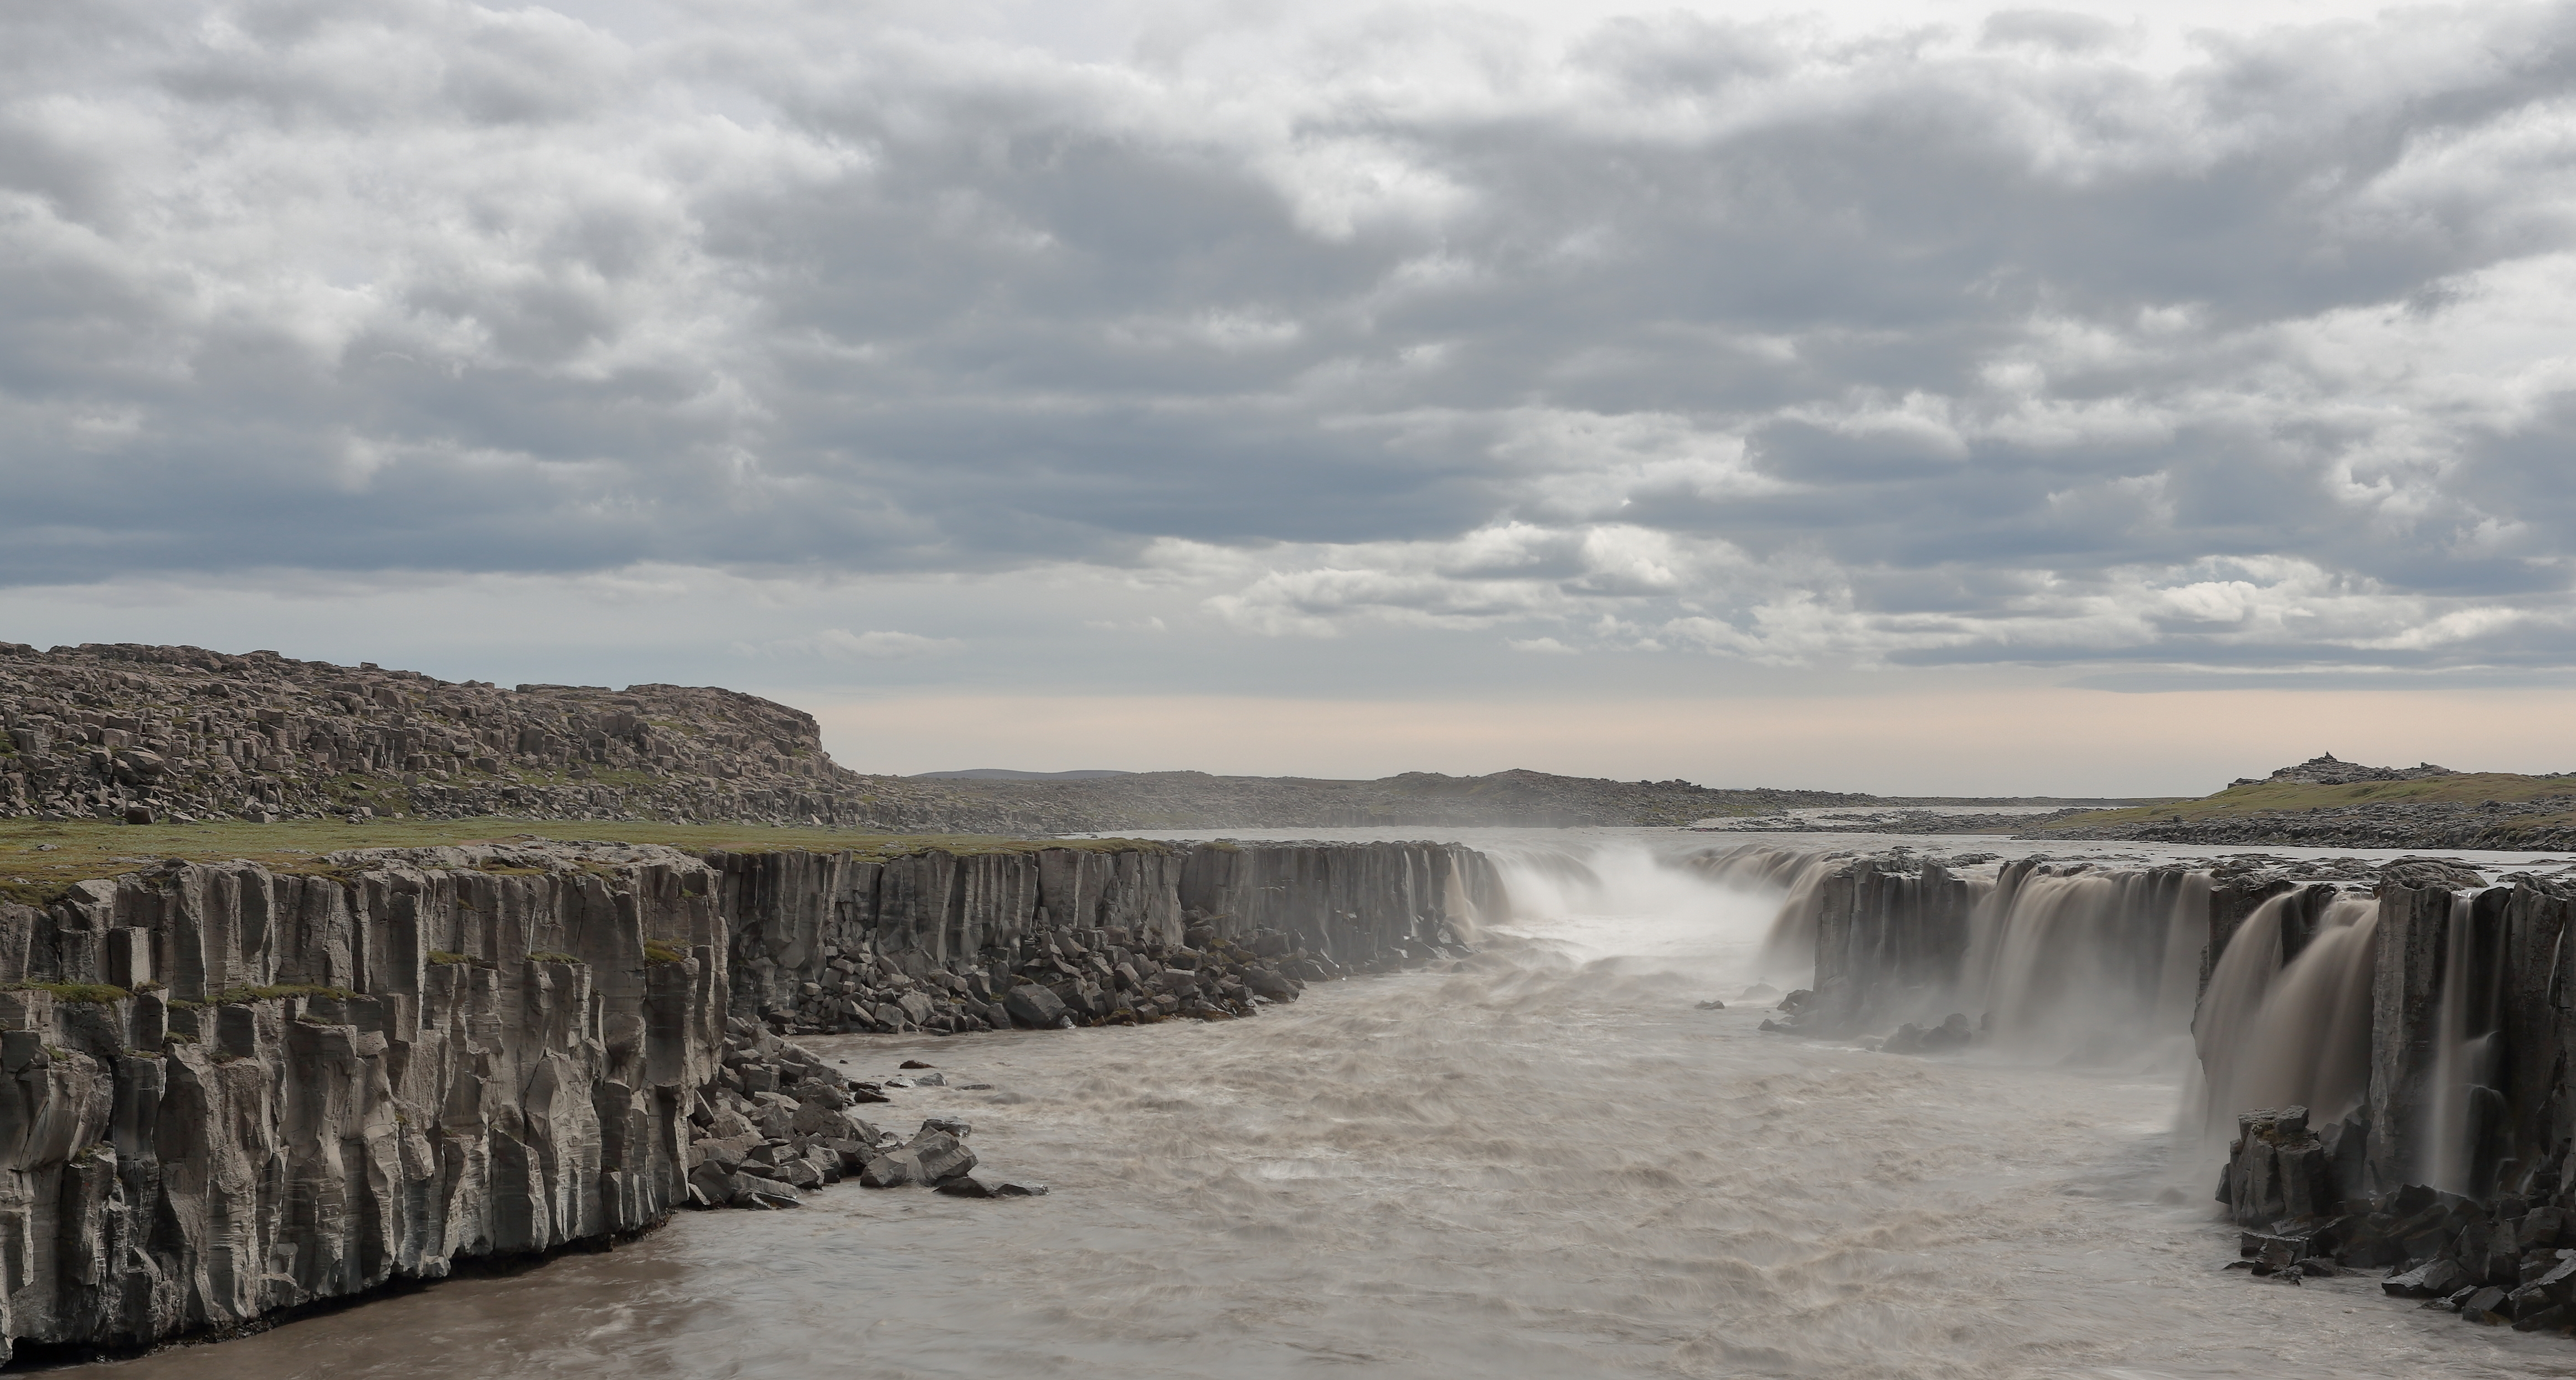 Selfoss, a waterfall in Iceland on the river Jökulsá á Fjöllum, as photographed by Martin Falbisoner.